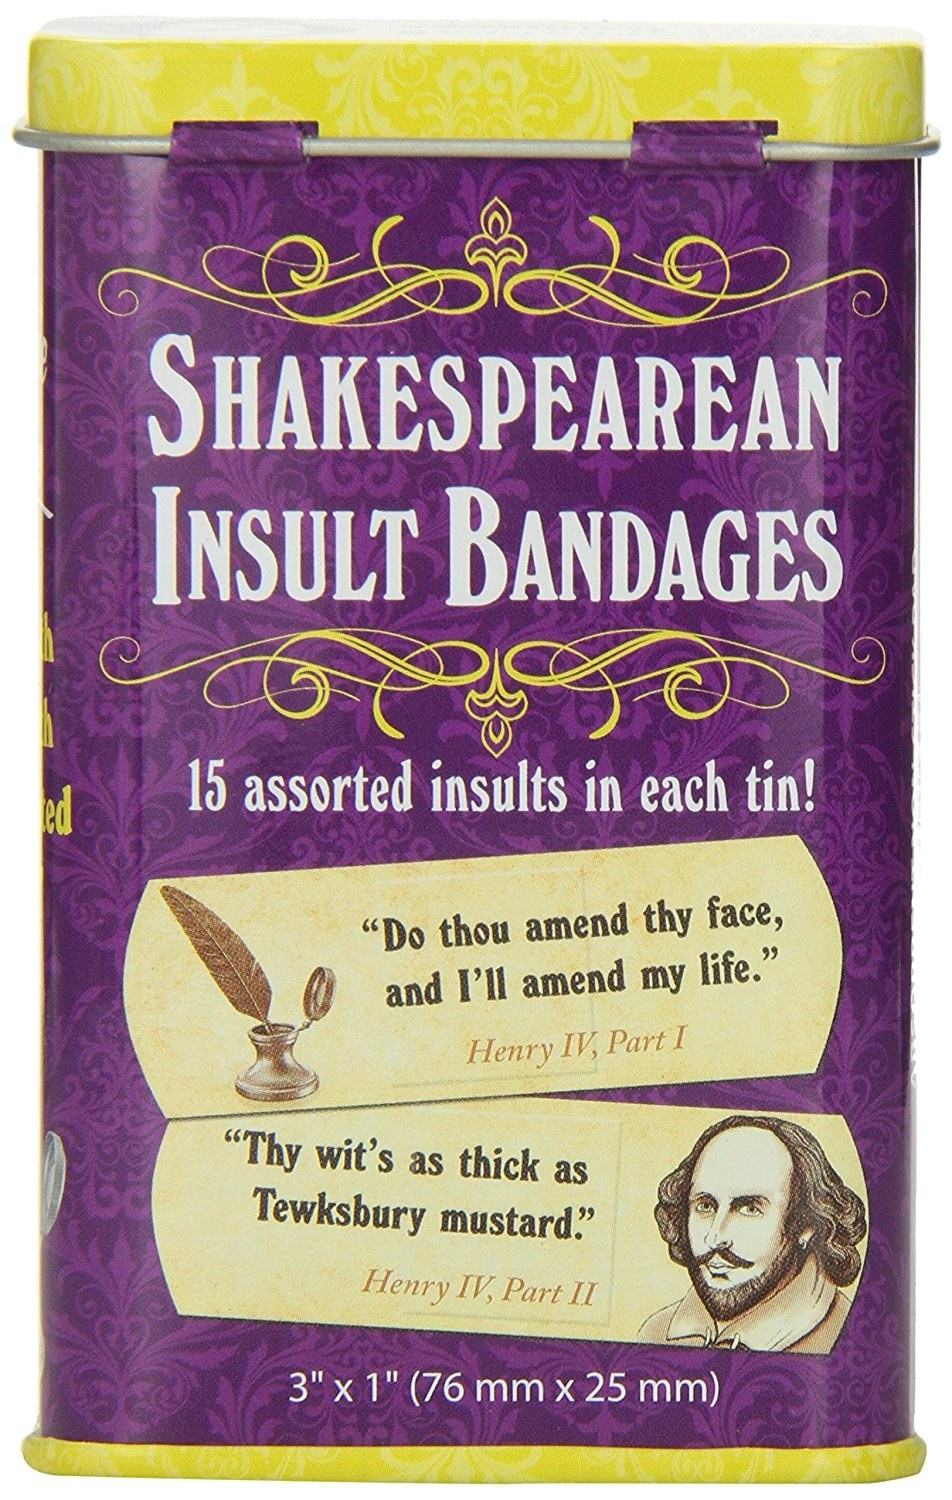 "A box of the bandages with examples on them like ""Do thou amend they face and I'll amend my life"" and ""Thy wit's as thick as Tewksbury mustard"""